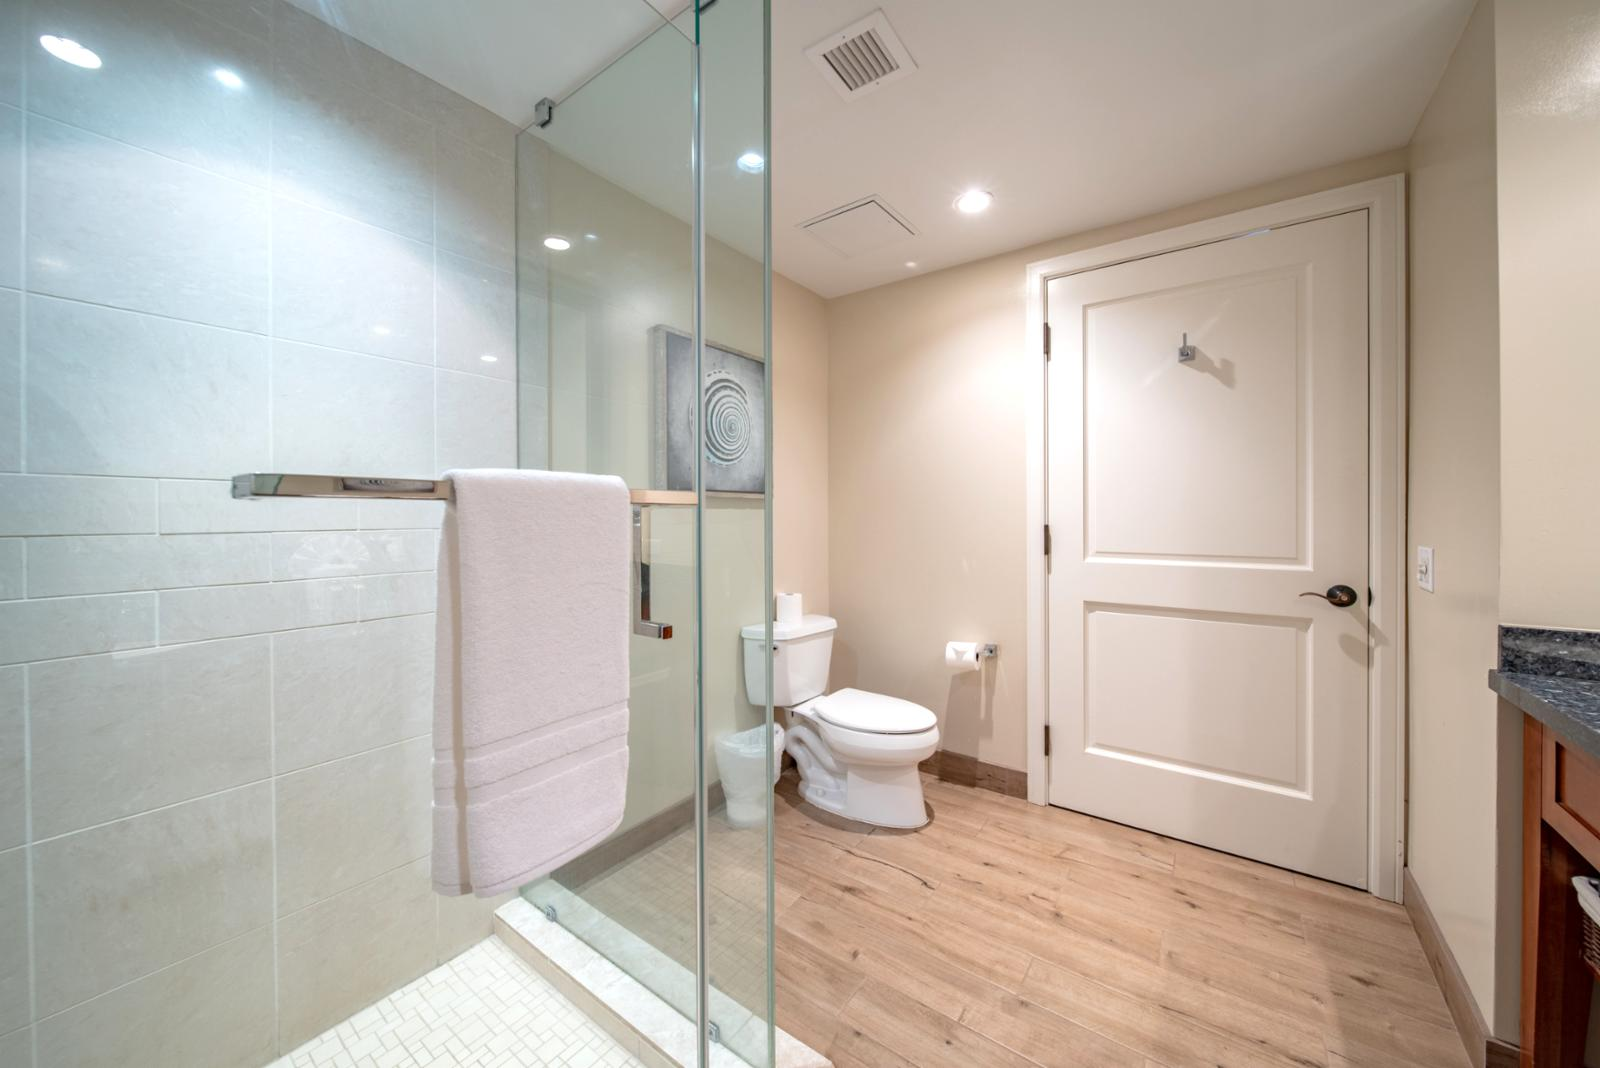 Floor to ceiling glass enclosed shower and plenty of additional space for families